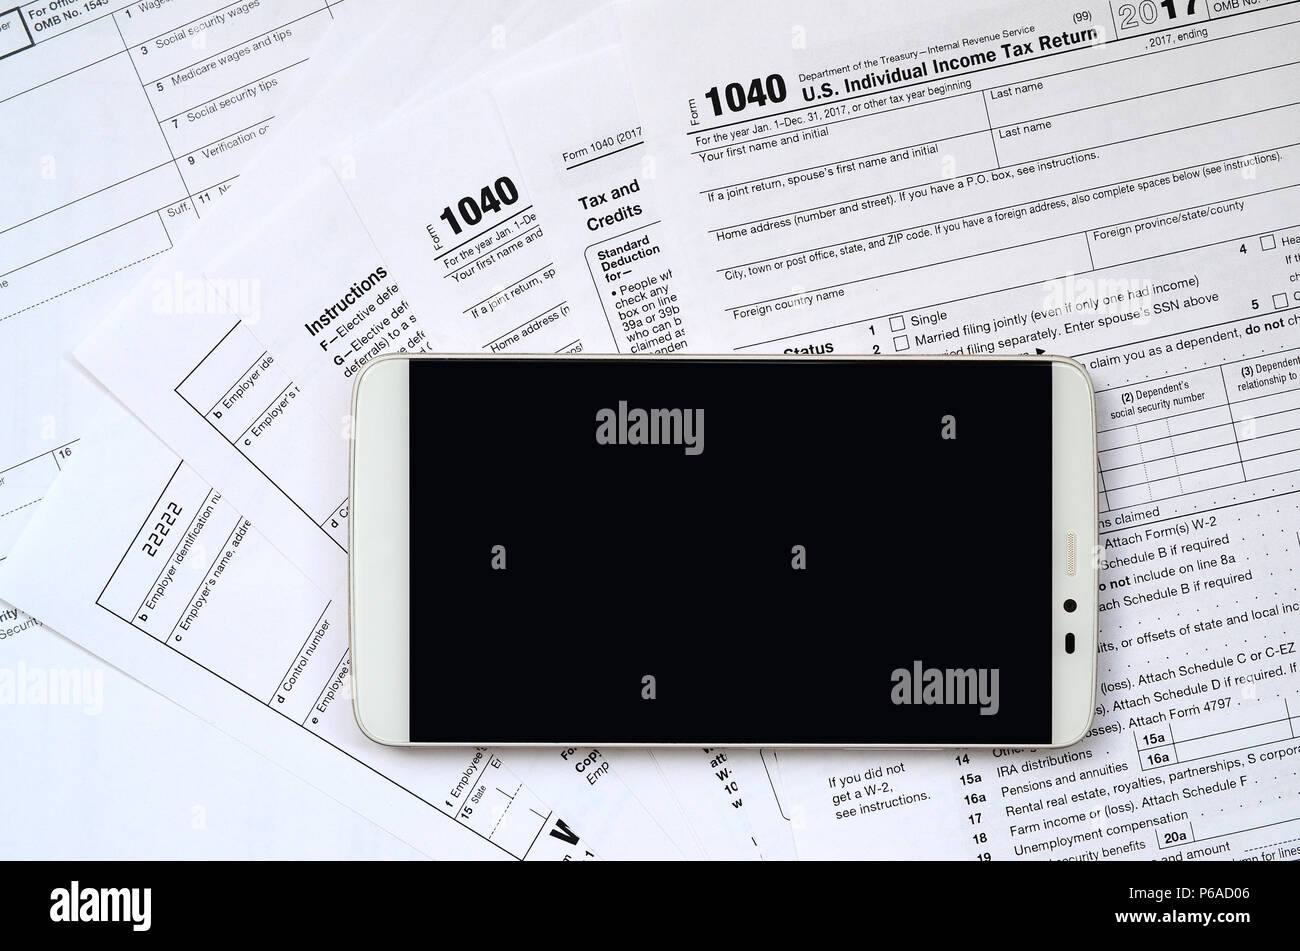 The Smartphone Lies On The Tax Form 1040 And W 2 Clean Black Screen